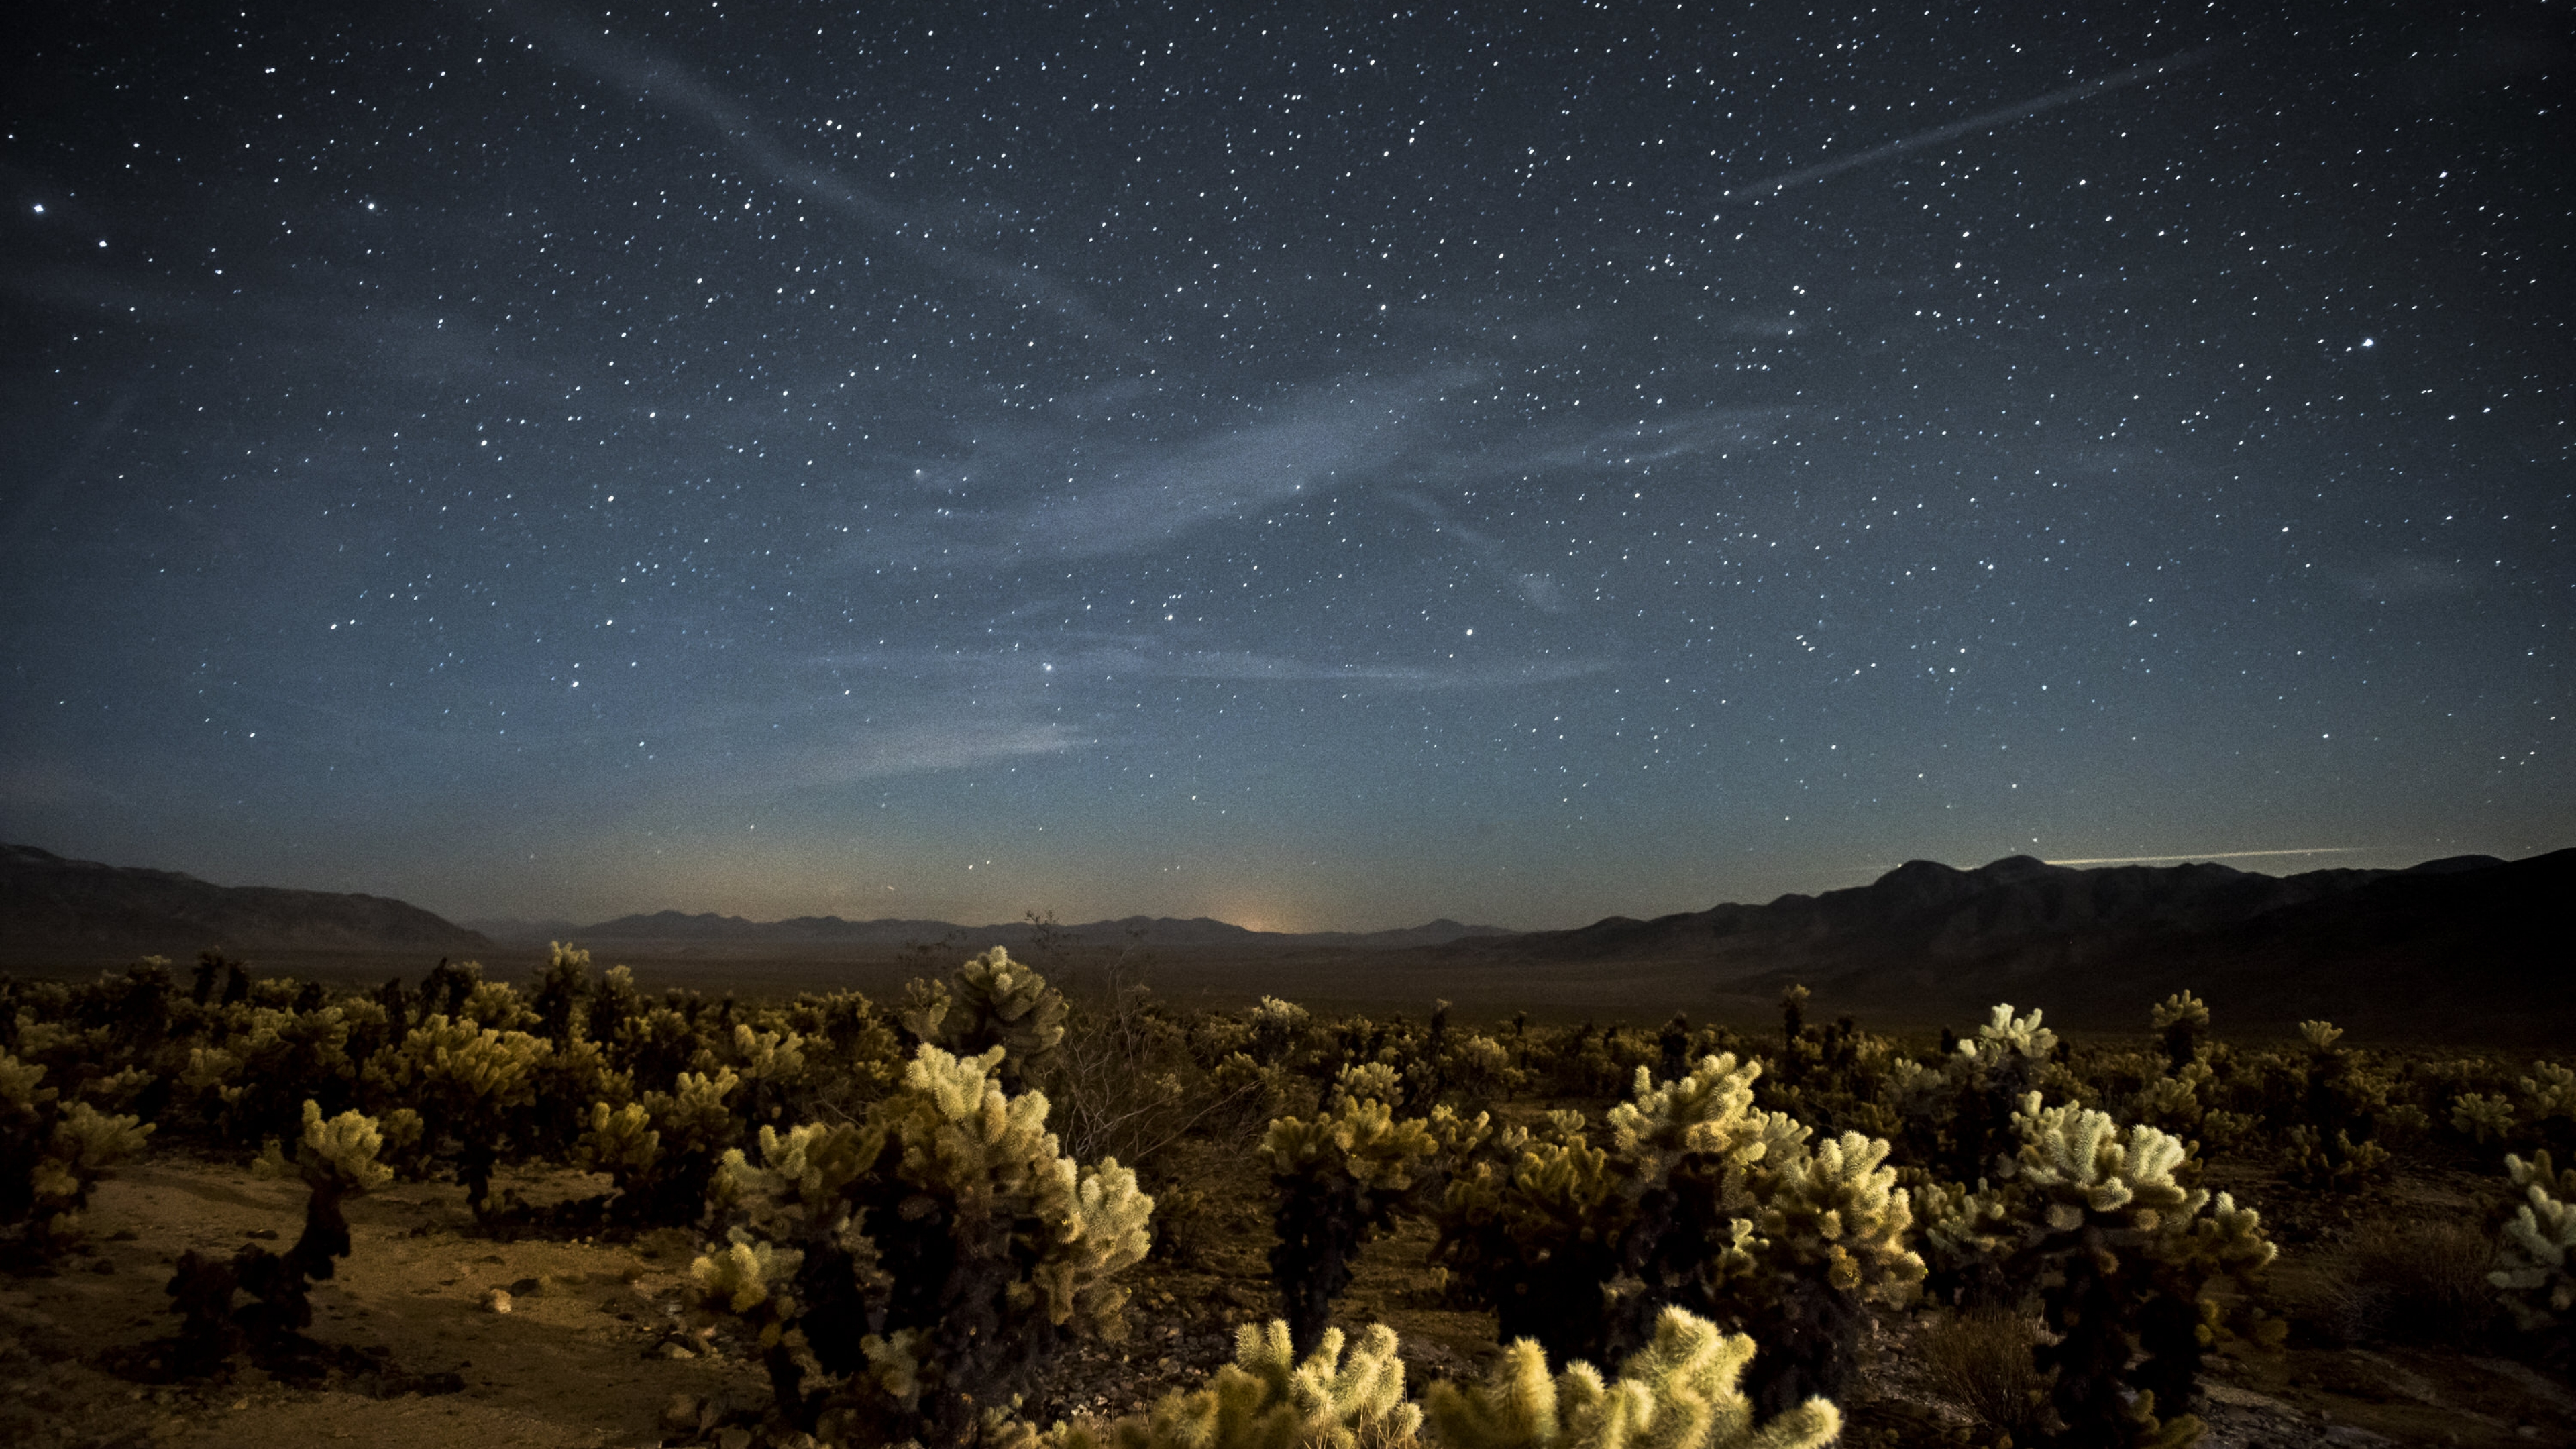 The night sky over the Cholla Cactus Garden at Joshua Tree National Park